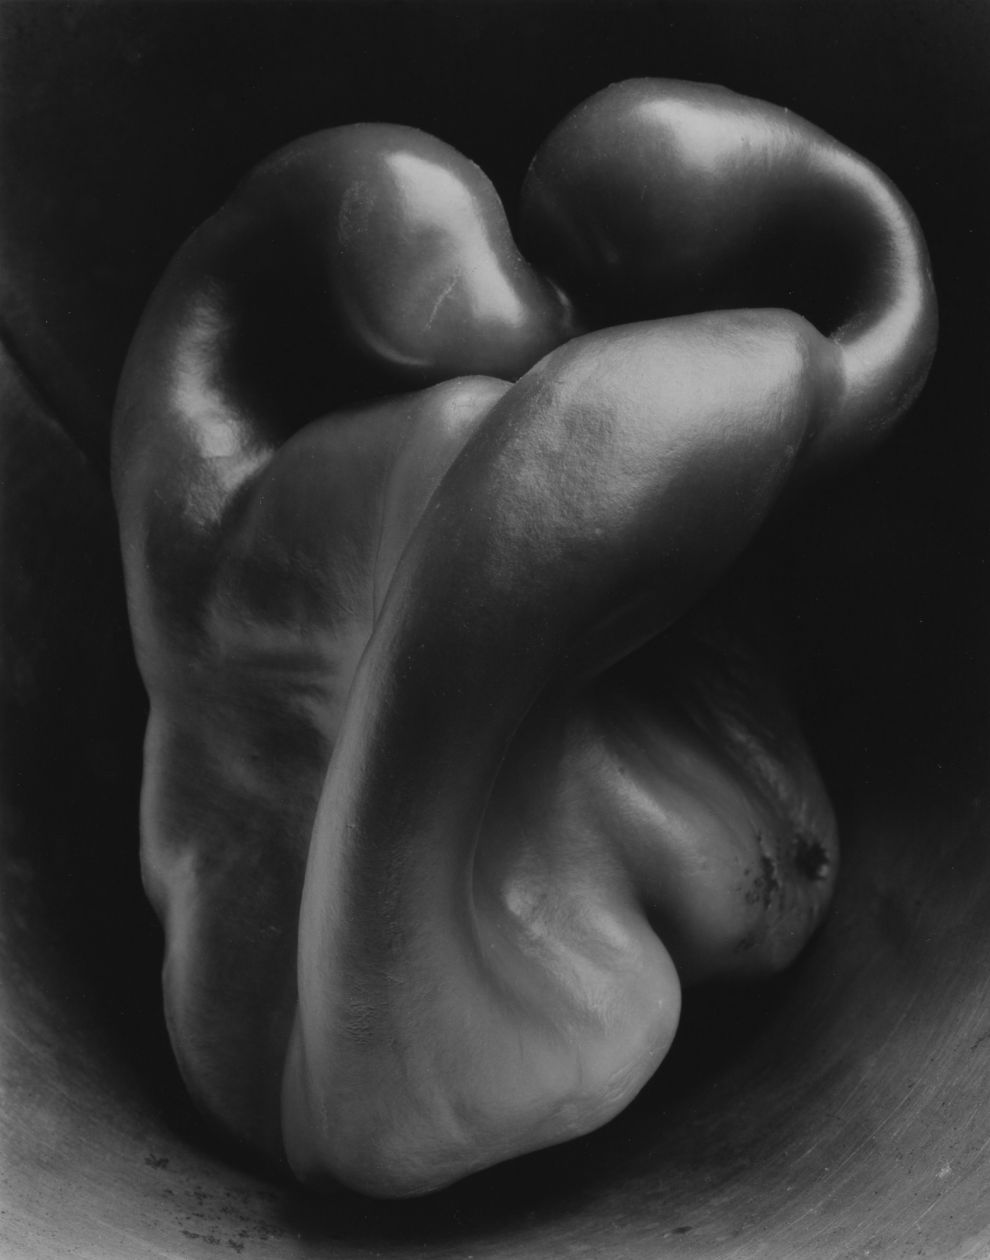 Pepper No. 30 (1930) by Edward Weston